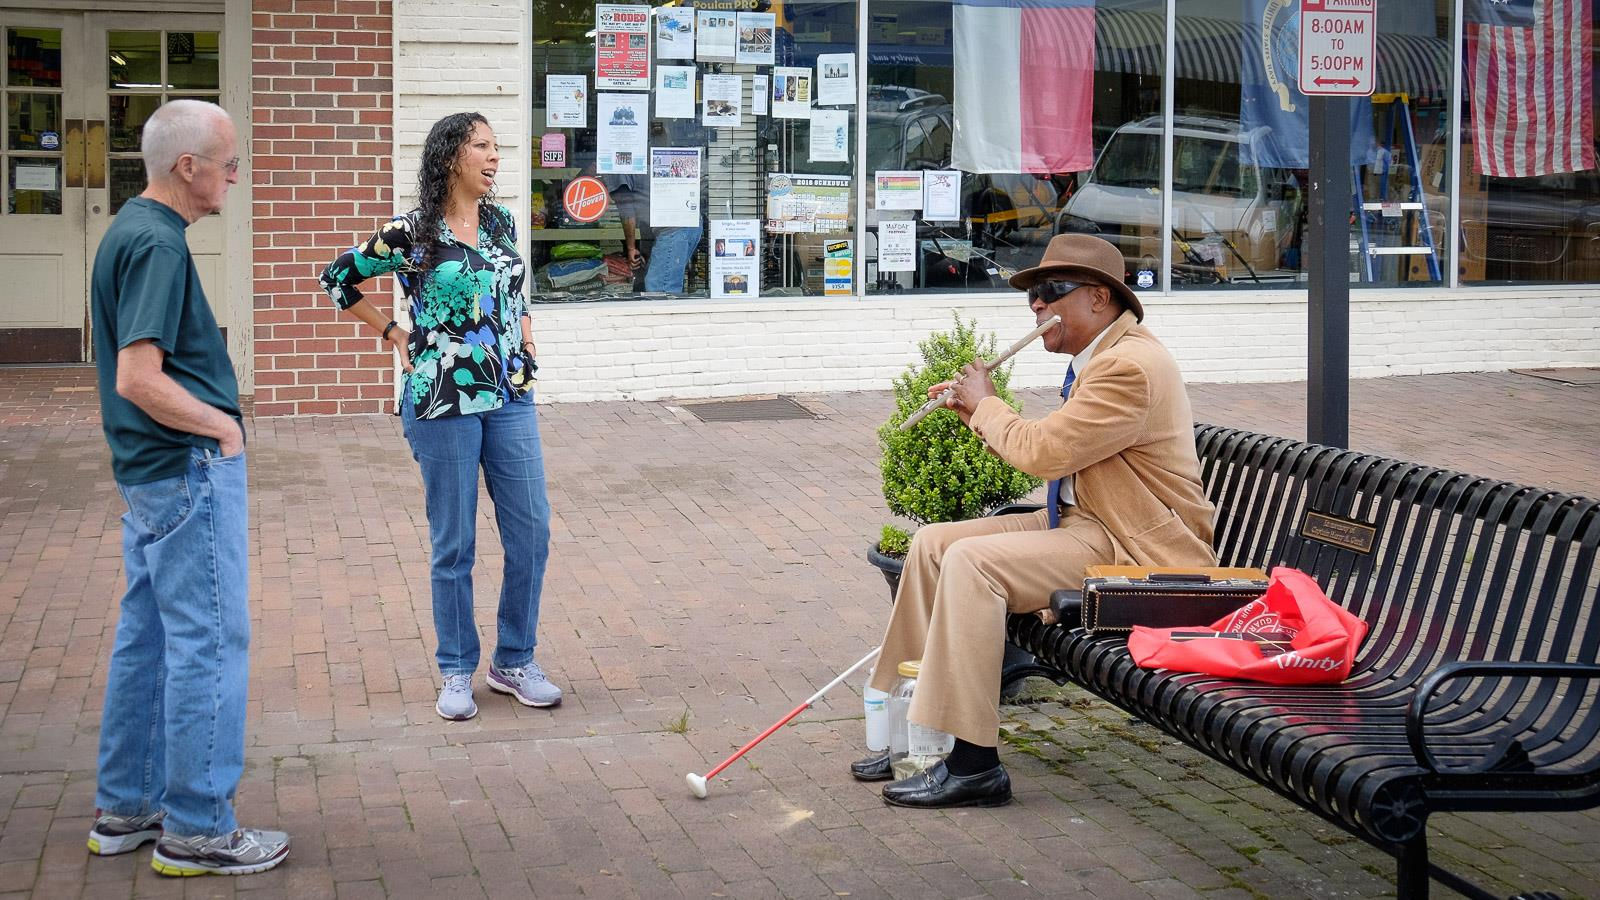 Street Musician, Edenton, North Carolina